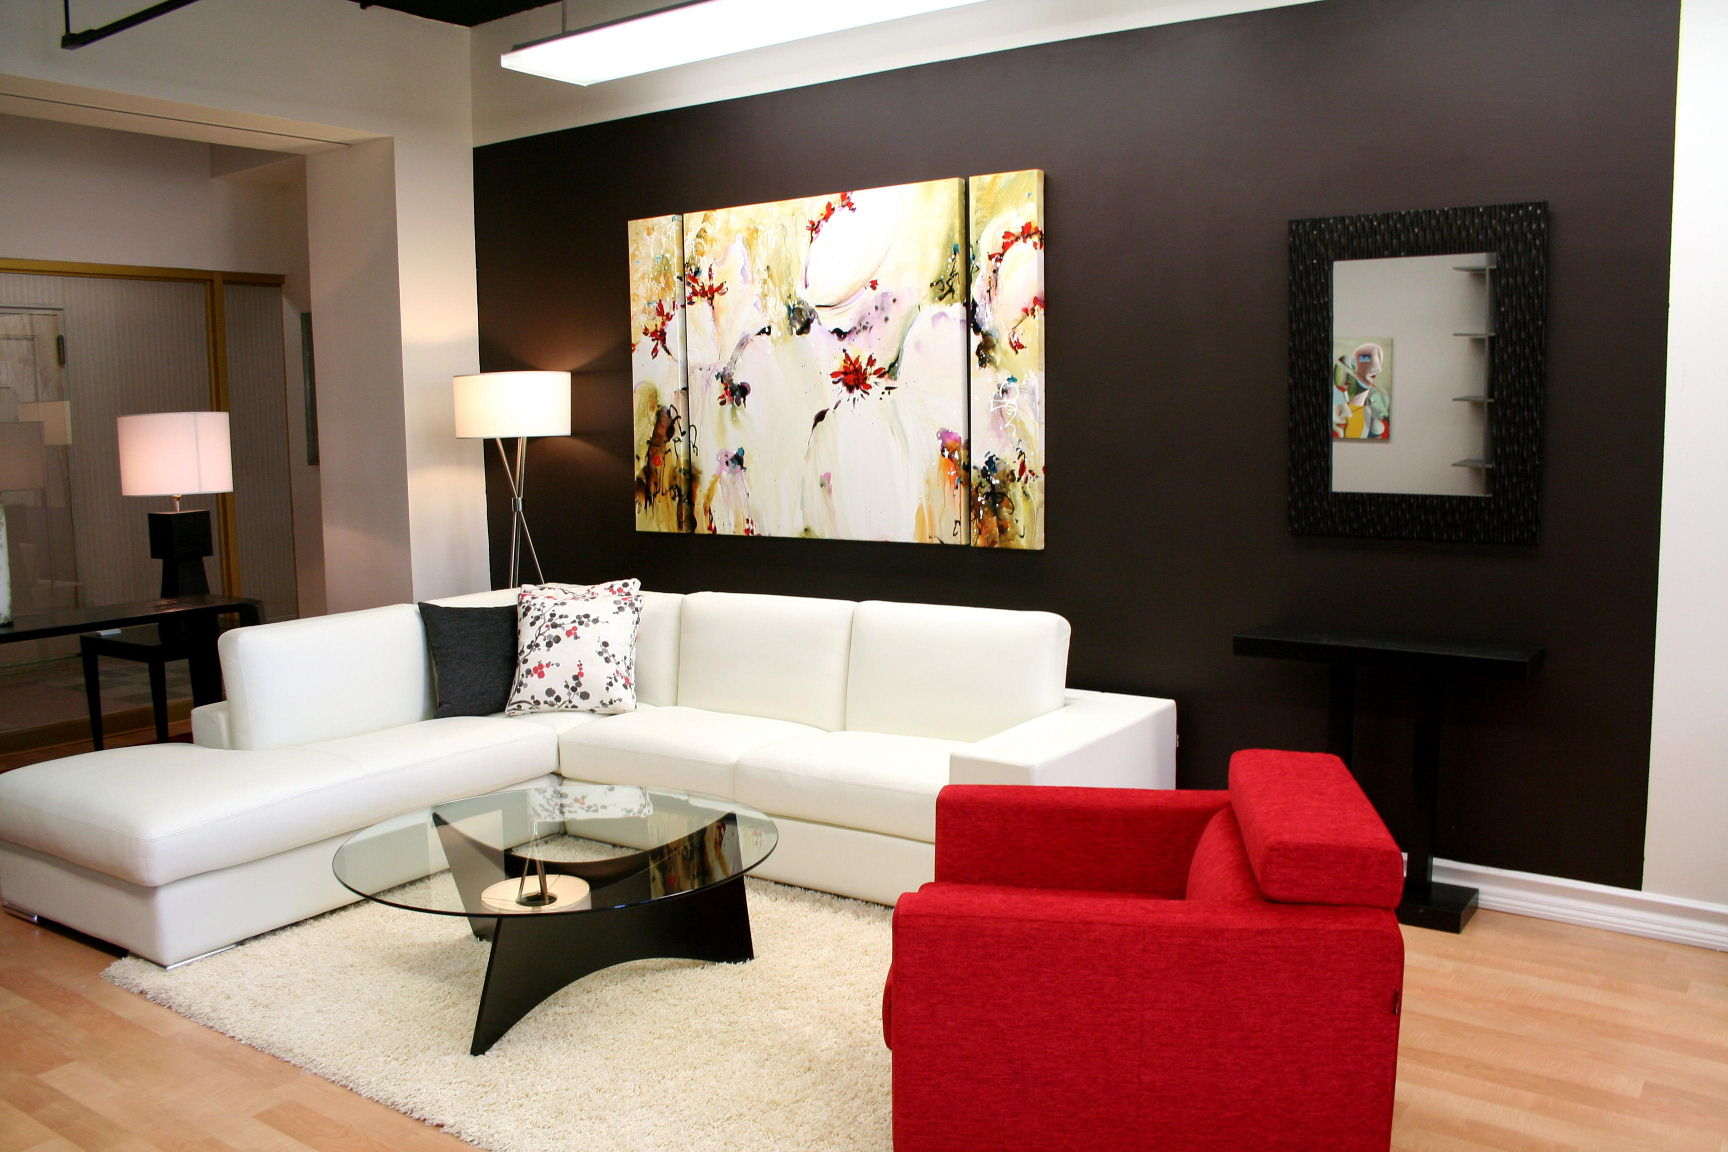 large wall pictures decorating tips.